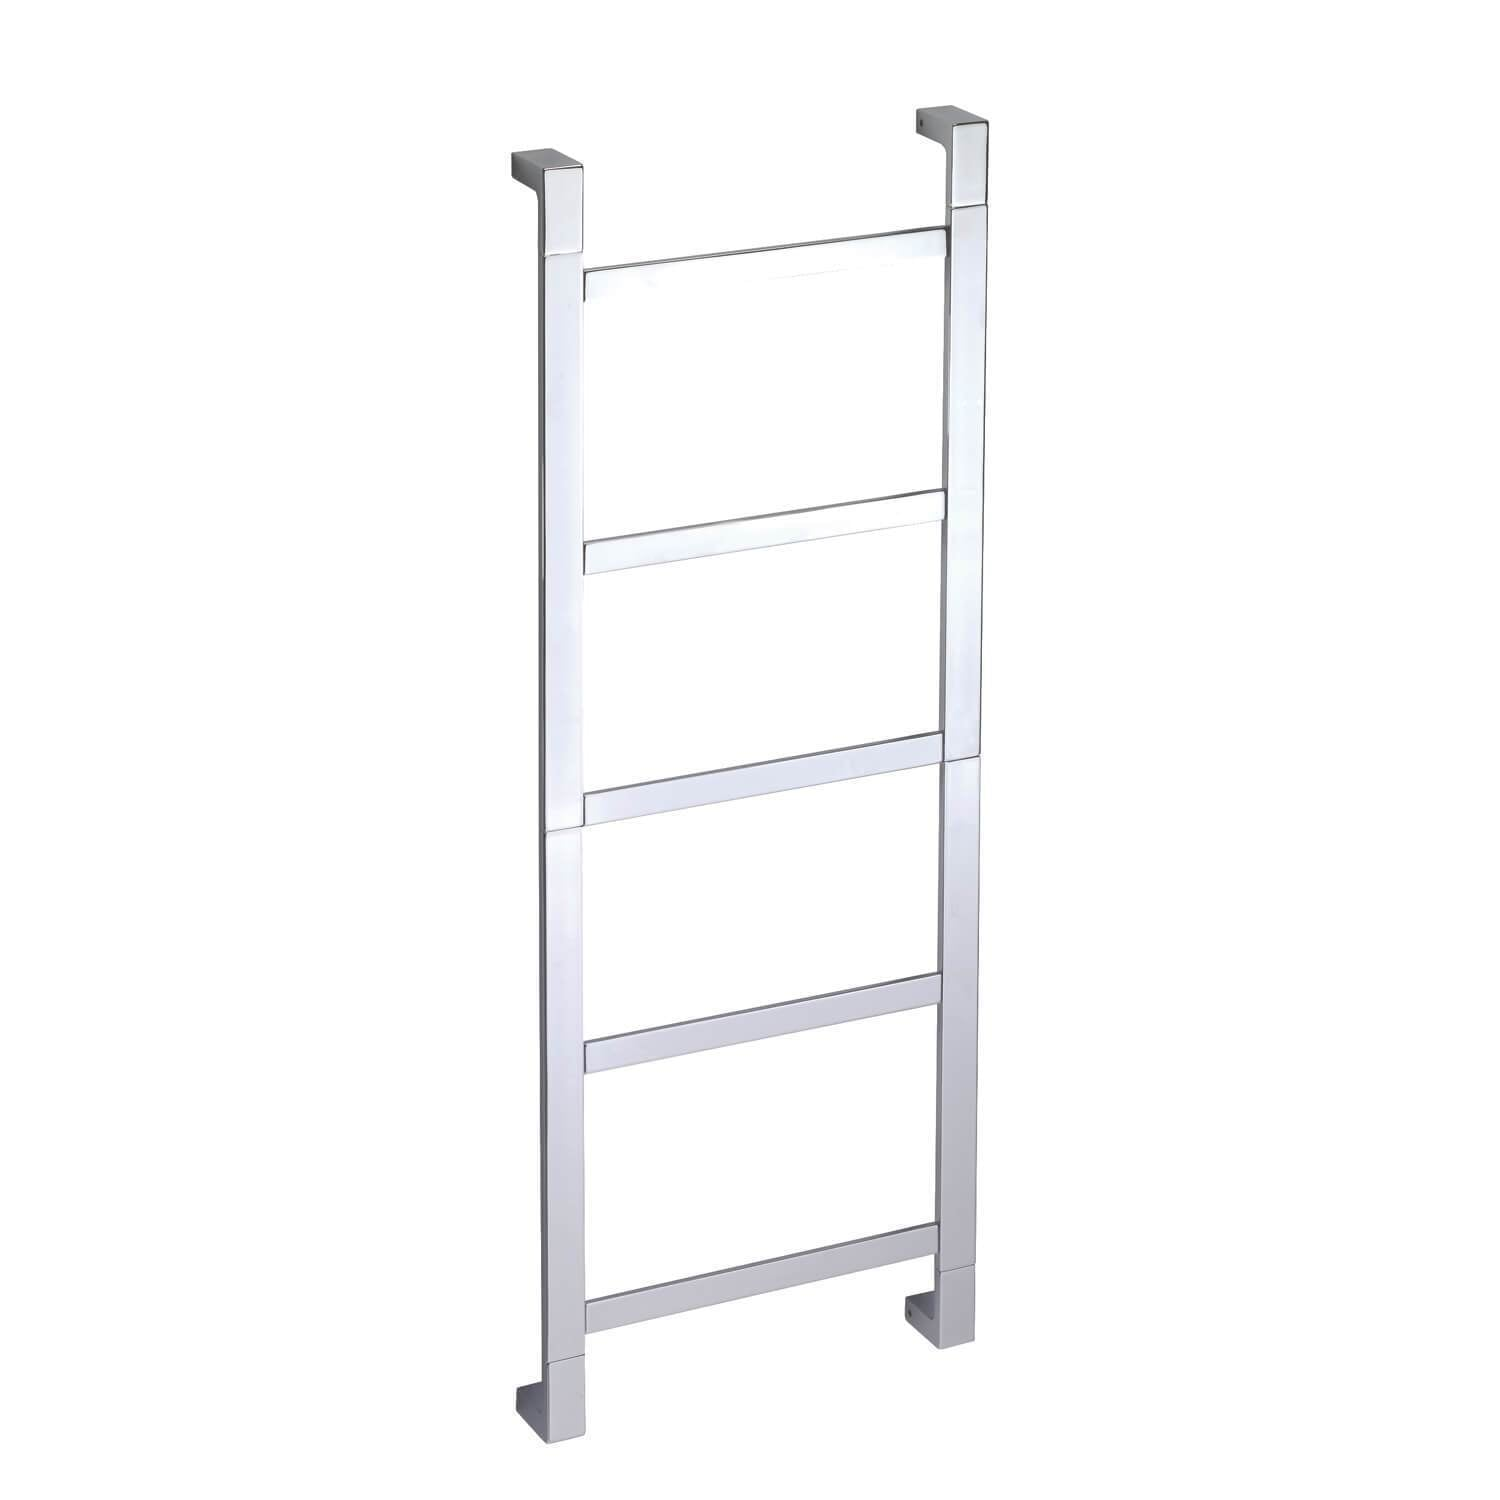 Pomdor Jack Wall 17.7 in Towel Rack Ladder for Bathroom Spa Towel Hanger Chrome